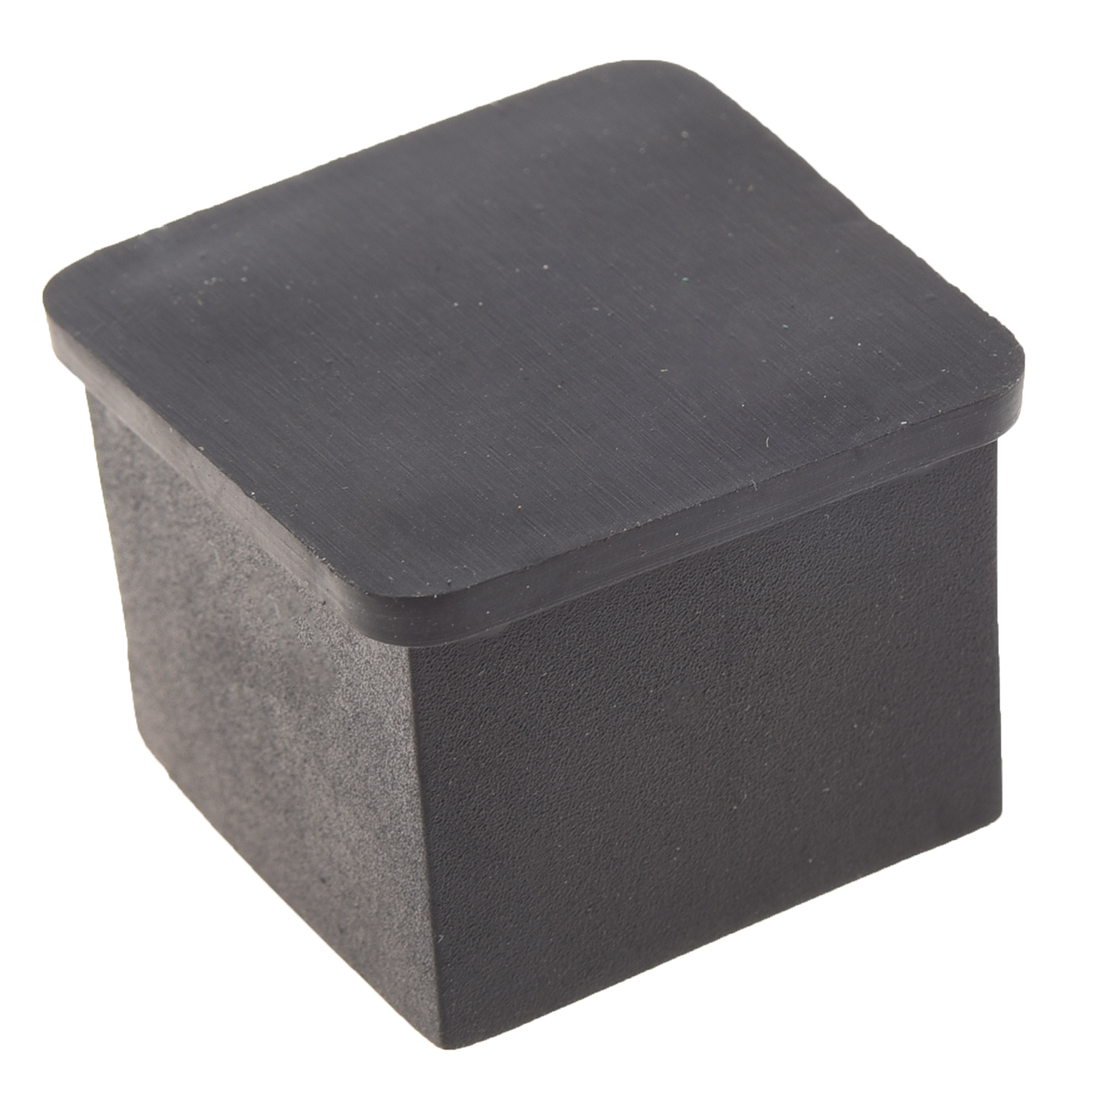 Promotion! 15Pcs Black Rubber 30mmx30mm Square Chair Foot Cover Chair Leg Caps  Table Foot Cover